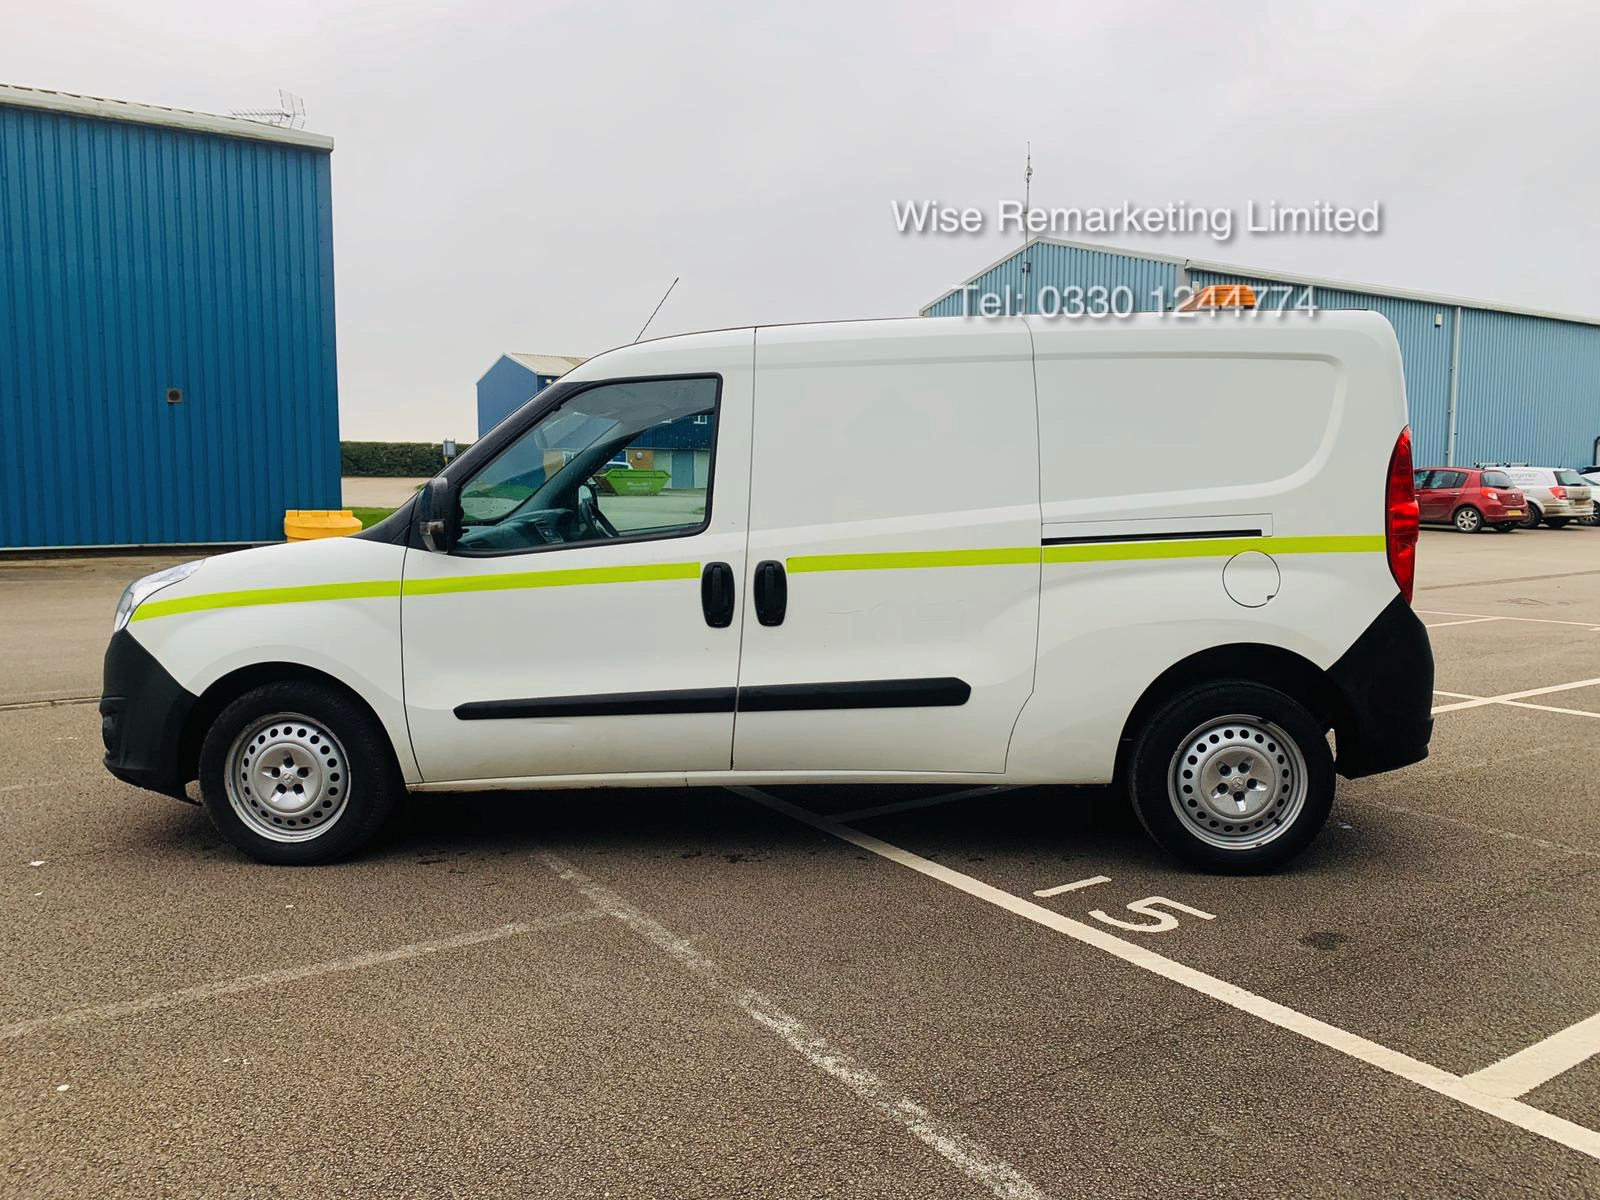 Vauxhall Combo 2300 1.6 CDTI Long - 2016 Model - 1 Keeper From New - Twin Doors - Ply Lined - Image 2 of 21